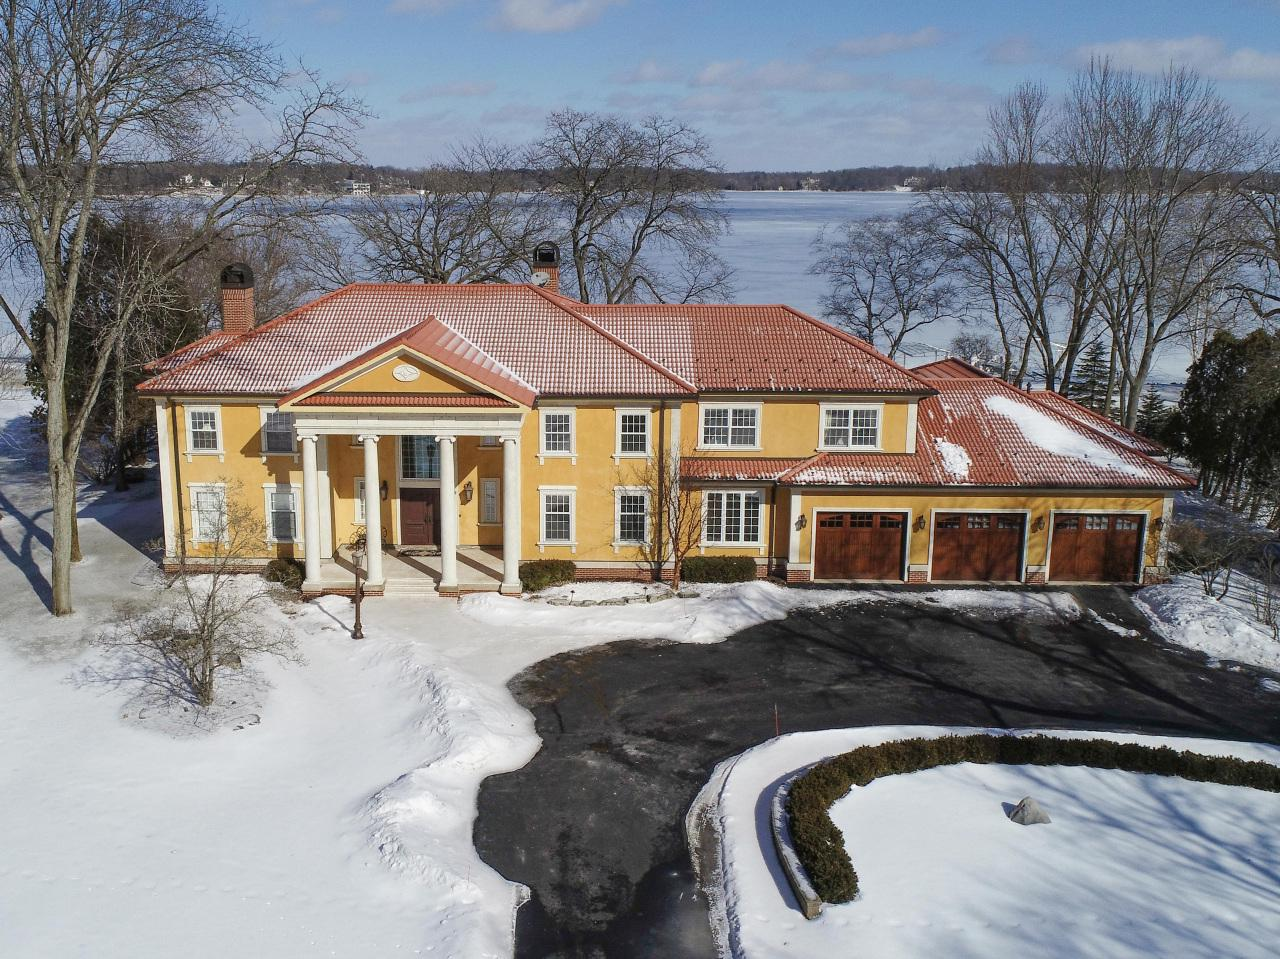 36234 S Beach Rd ROAD, OCONOMOWOC LAKE, WI 53066